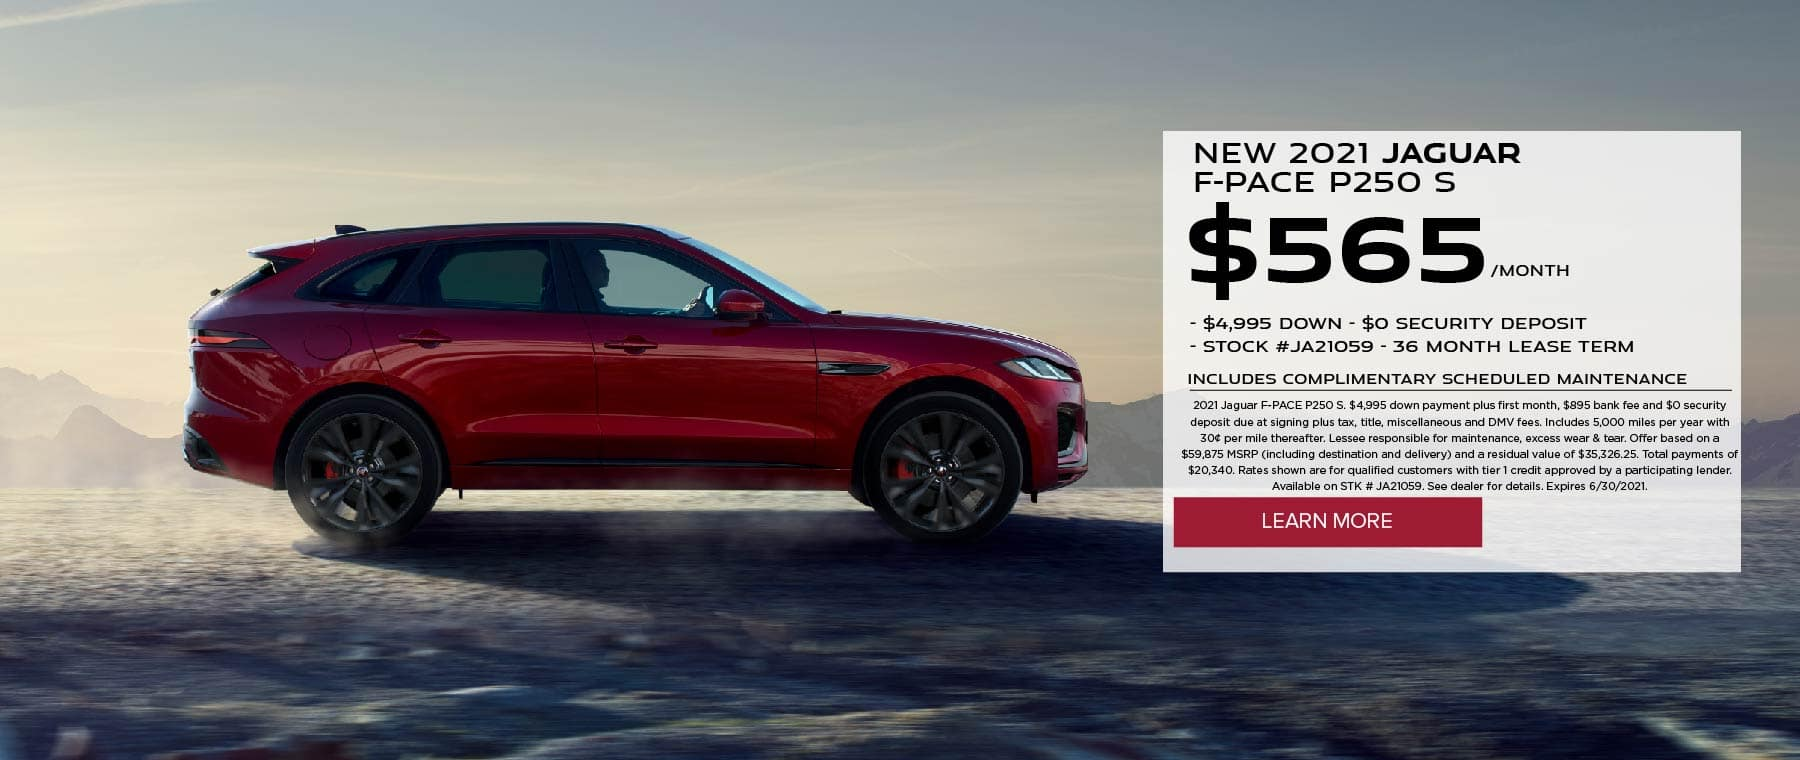 June 2021 – F-PACE P250 Lease